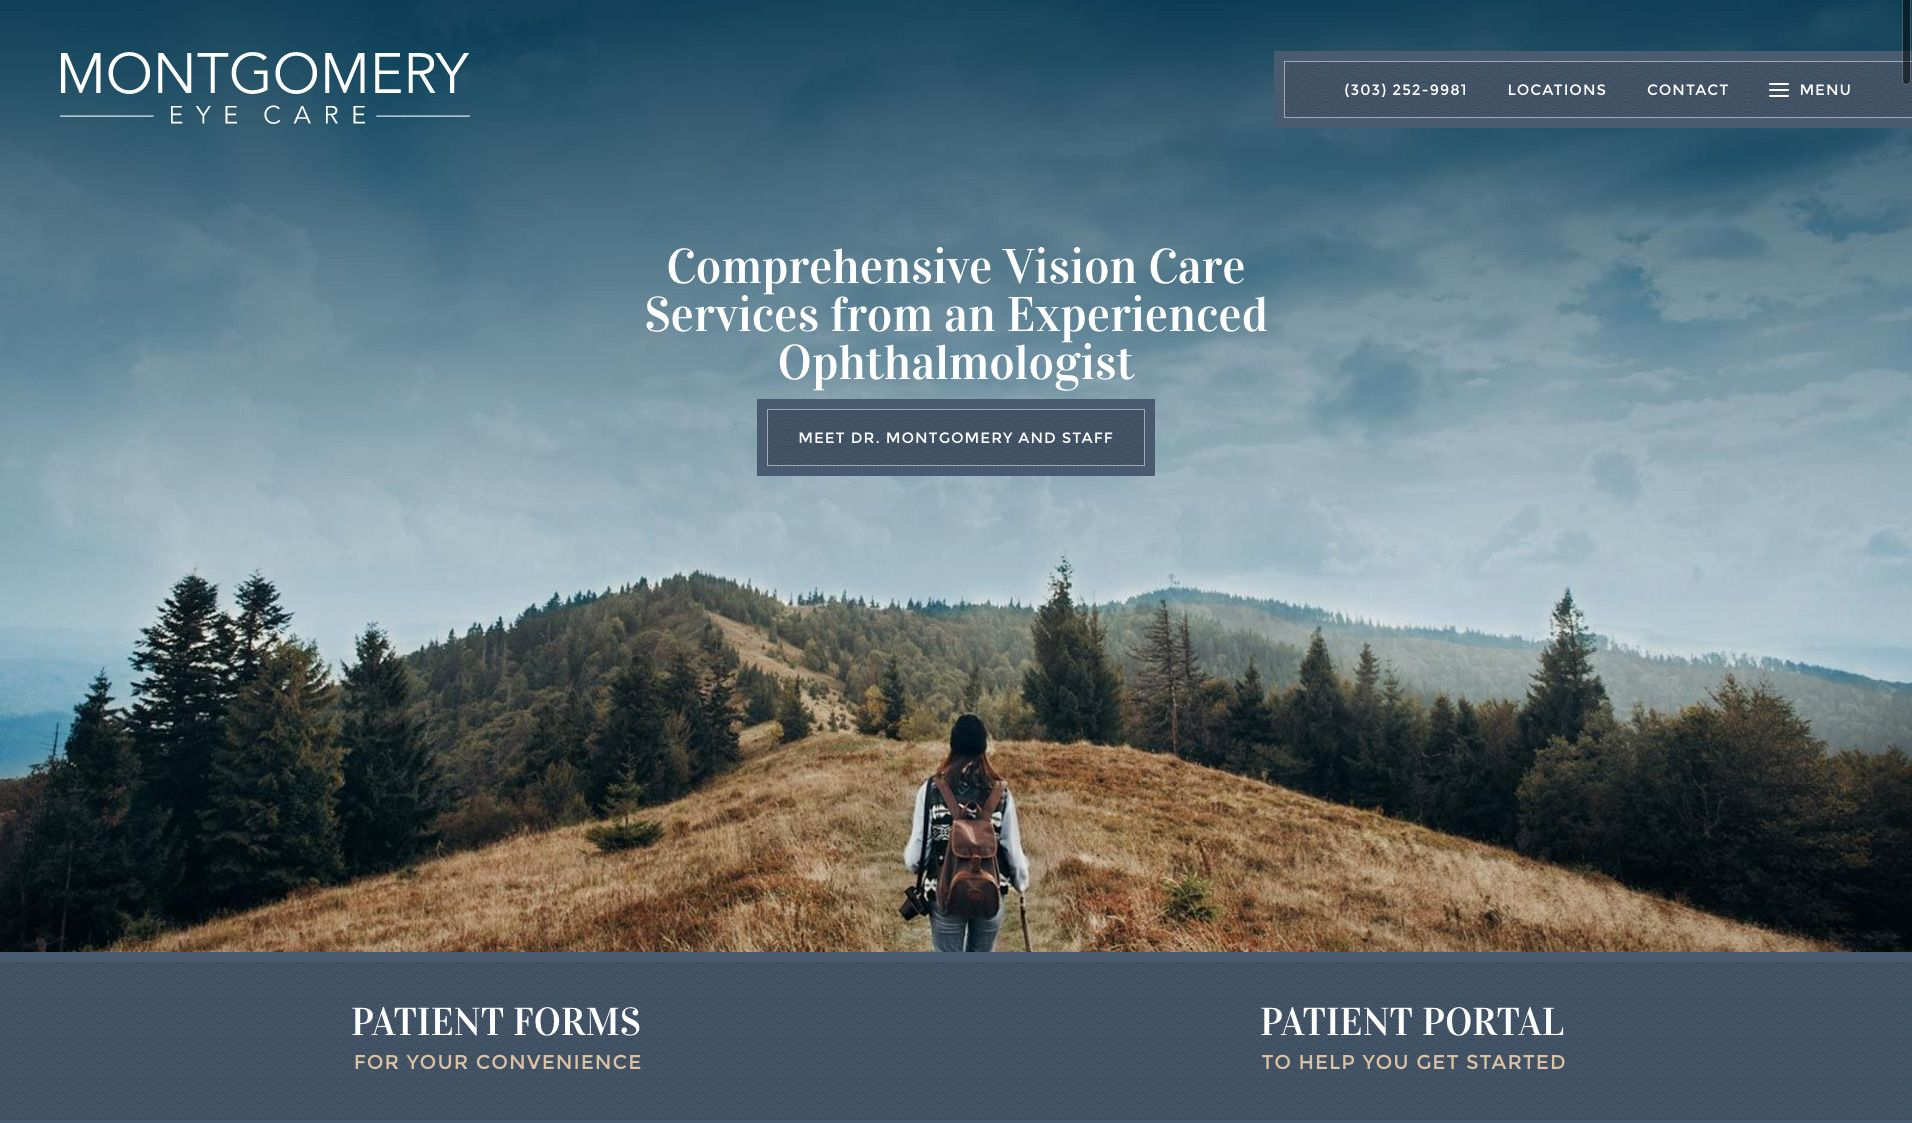 The website of Montgomery Eye Care